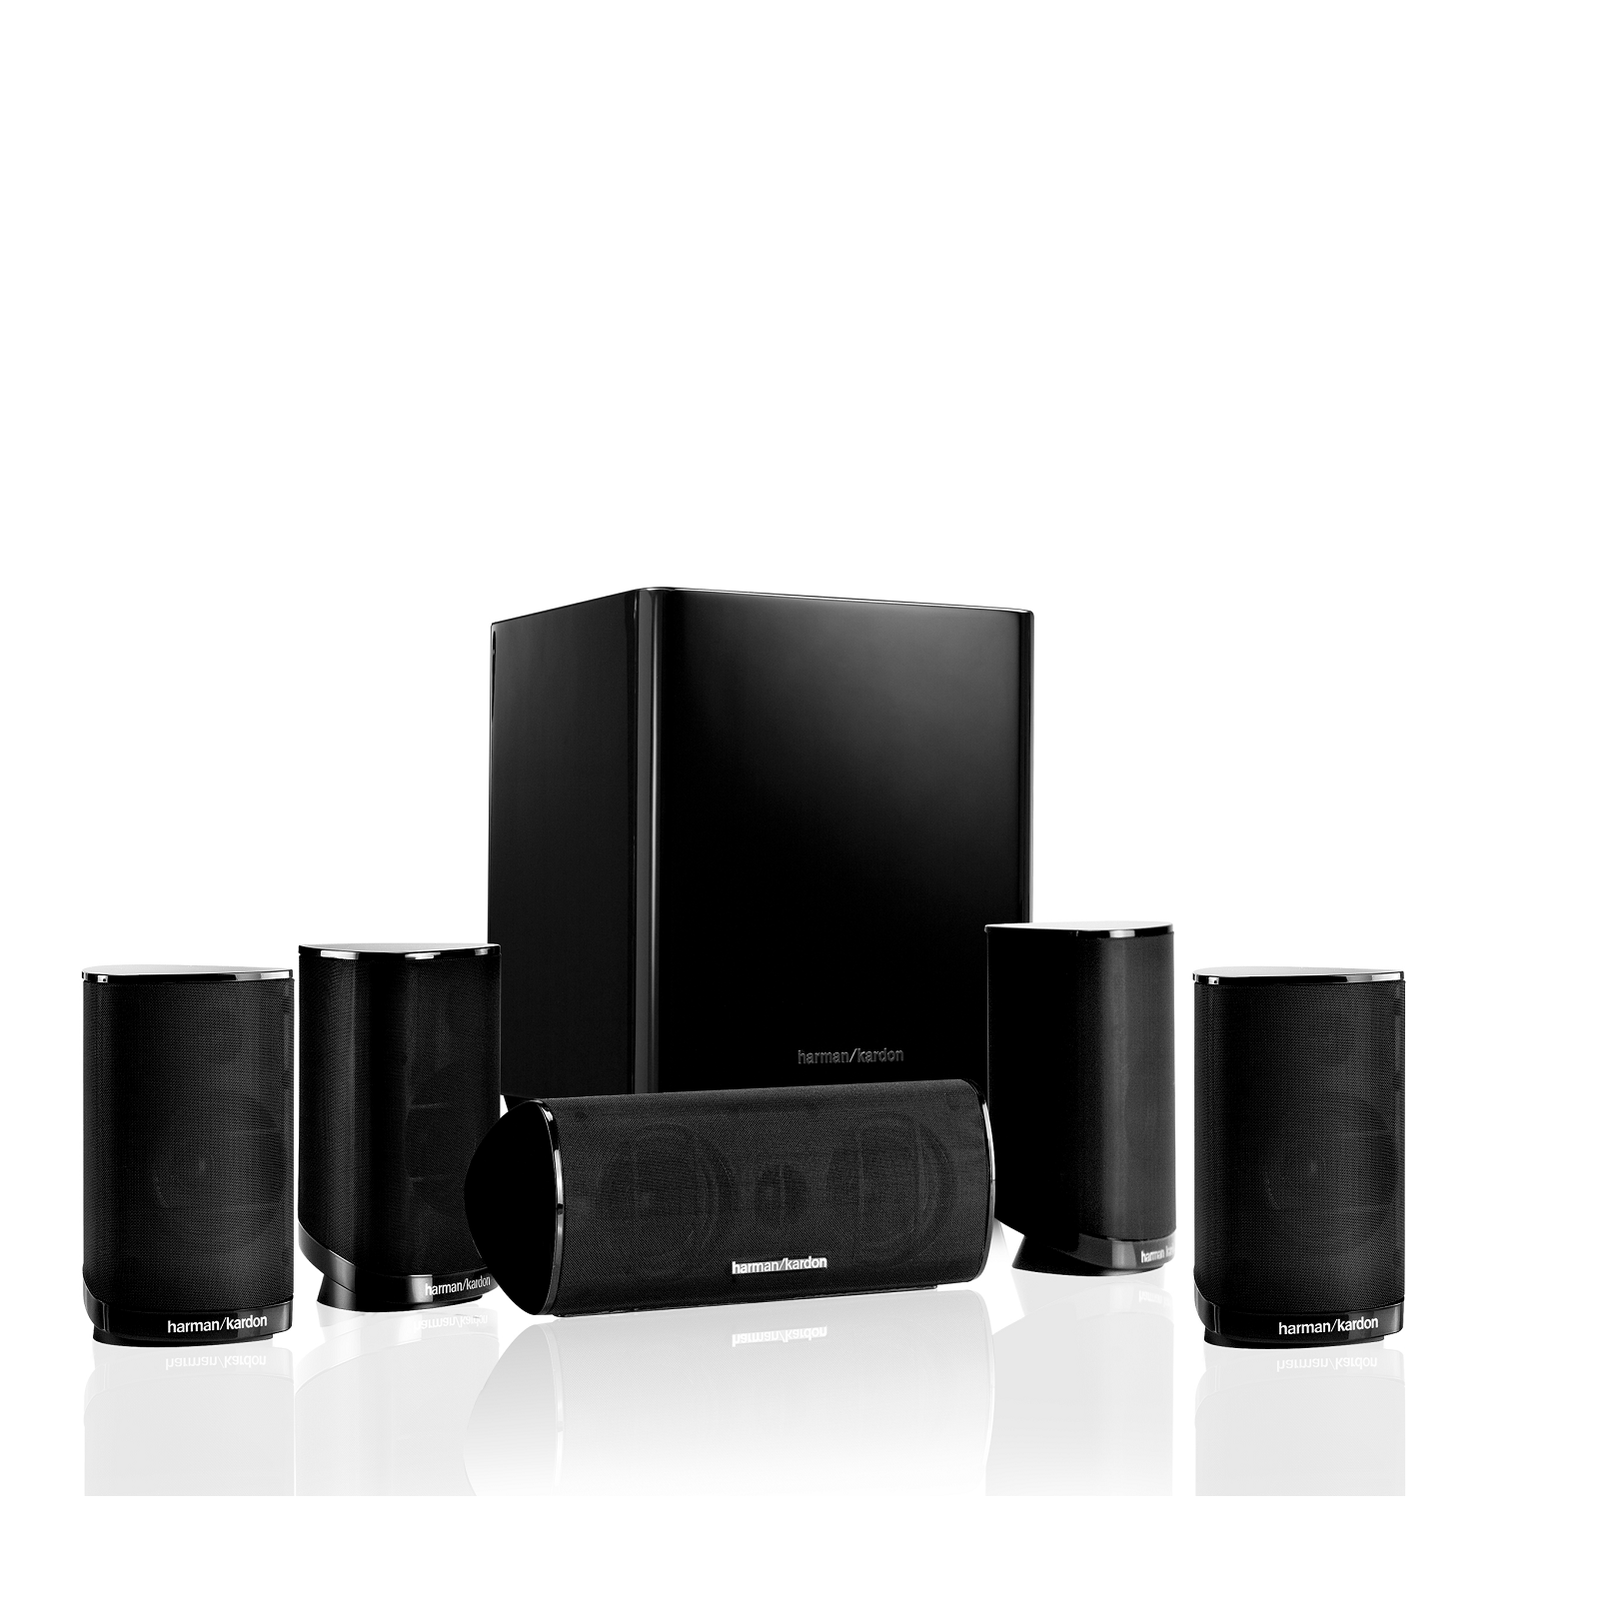 HKTS 9 - Black - 5.1-channel home theater speaker system with powered subwoofer - Hero